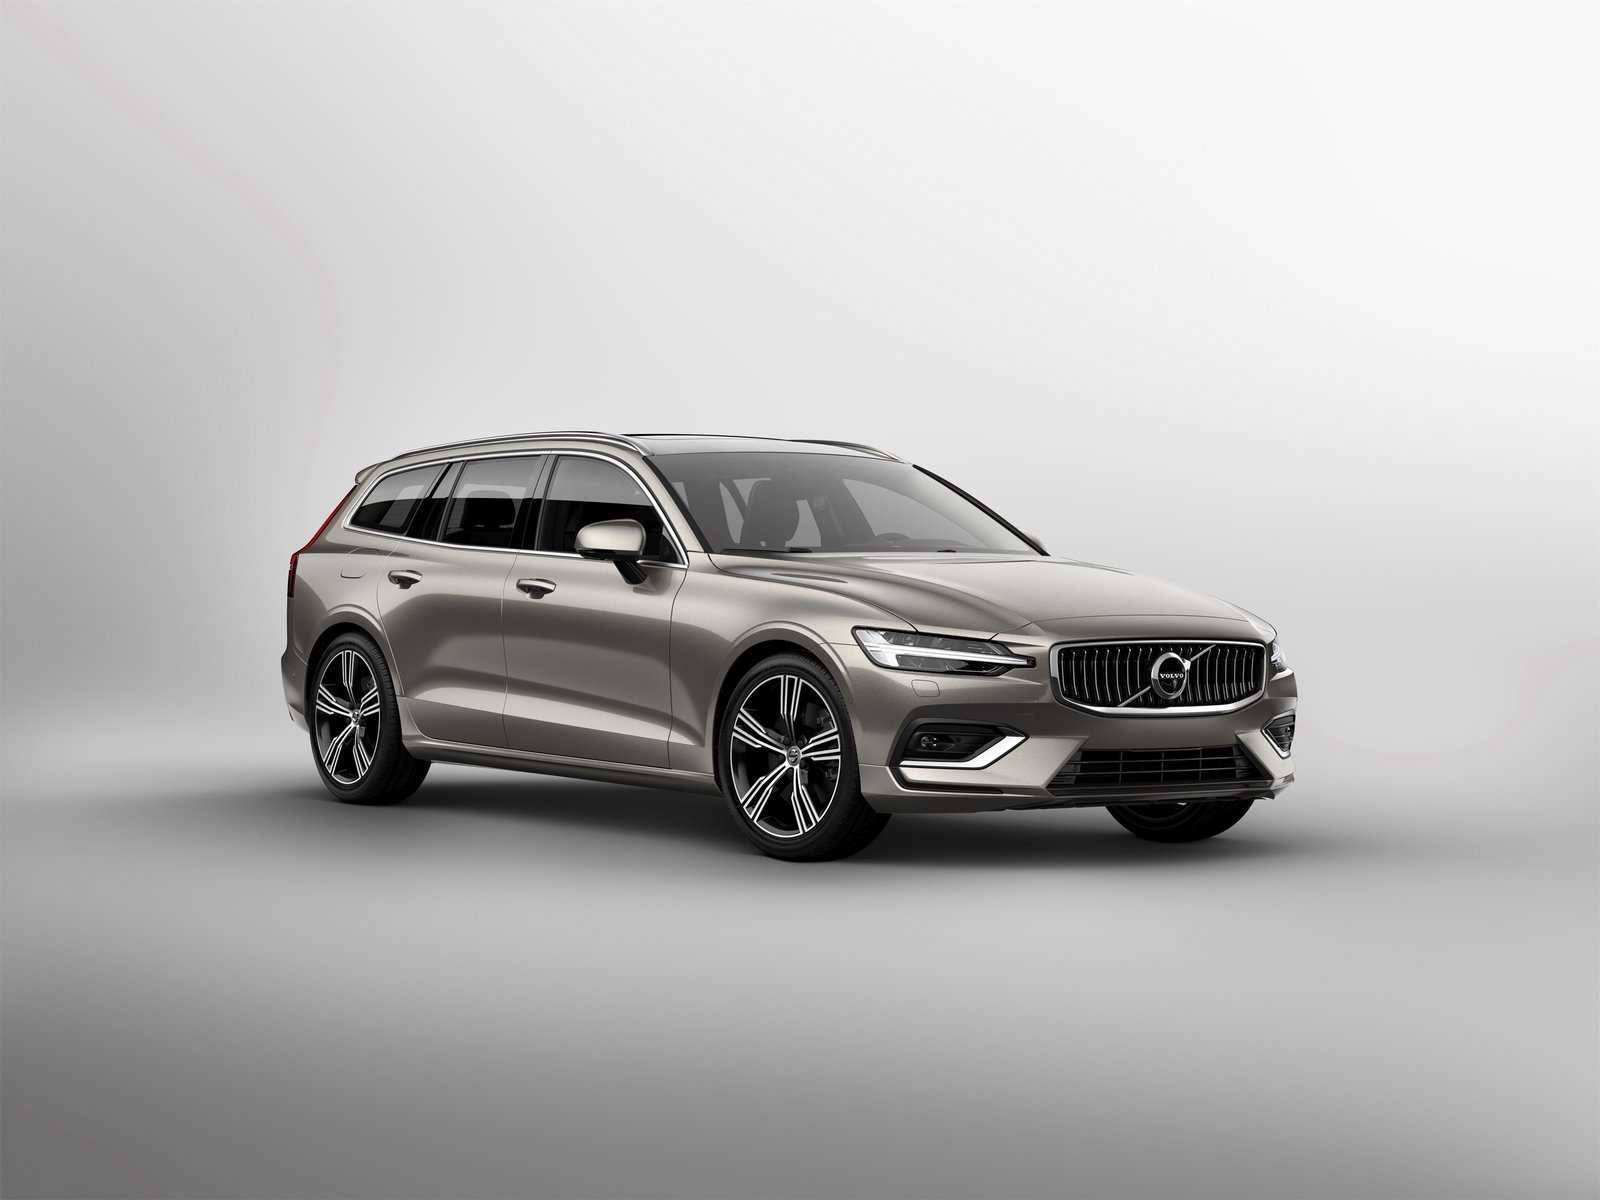 43 The Best 2019 Volvo V60 Price Configurations